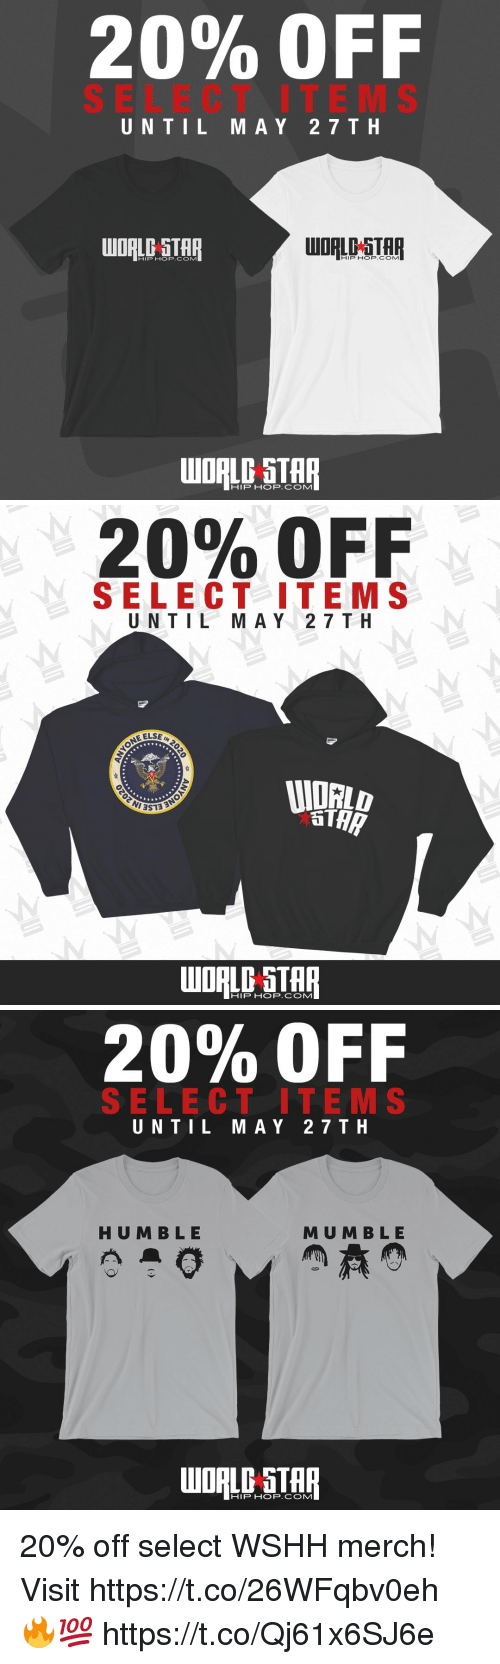 Wshh, Star, and World: 20% OFF  SELECT ITE MS  UNTIL MAY 27 T H  HIP HOP.COM1  HIP HOP.COM   20% OFF  SELECT ITEM S  UNTIL M A Y 2 7TH  EELSE  HIP HOP.COM   20% OFF  SELECT ITE M S  UNTIL MAY 27TH  HUM BLE  MU M B LE  WORLD STAR  HIP HOP.COMM 20% off select WSHH merch! Visit https://t.co/26WFqbv0eh 🔥💯 https://t.co/Qj61x6SJ6e